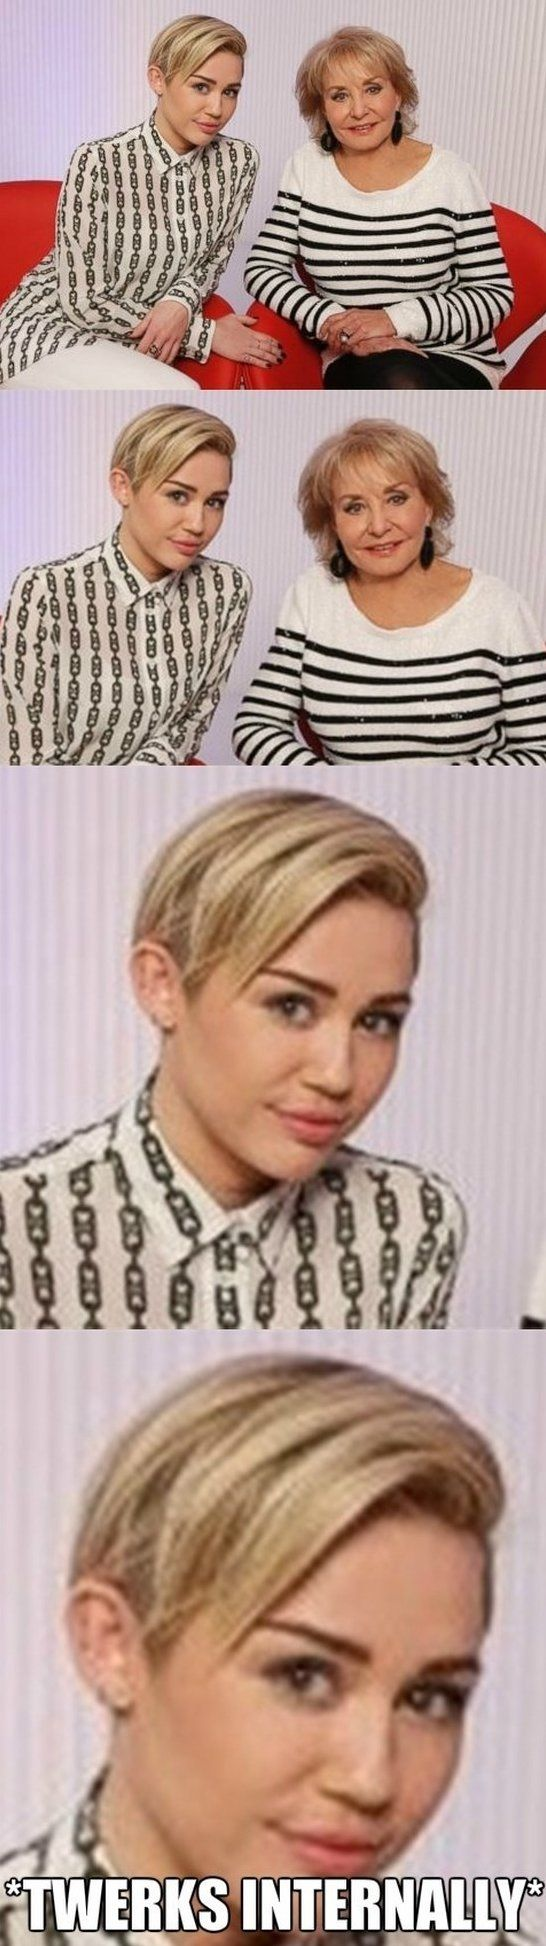 When Miley Is Not Twerking - www.meme-lol.com